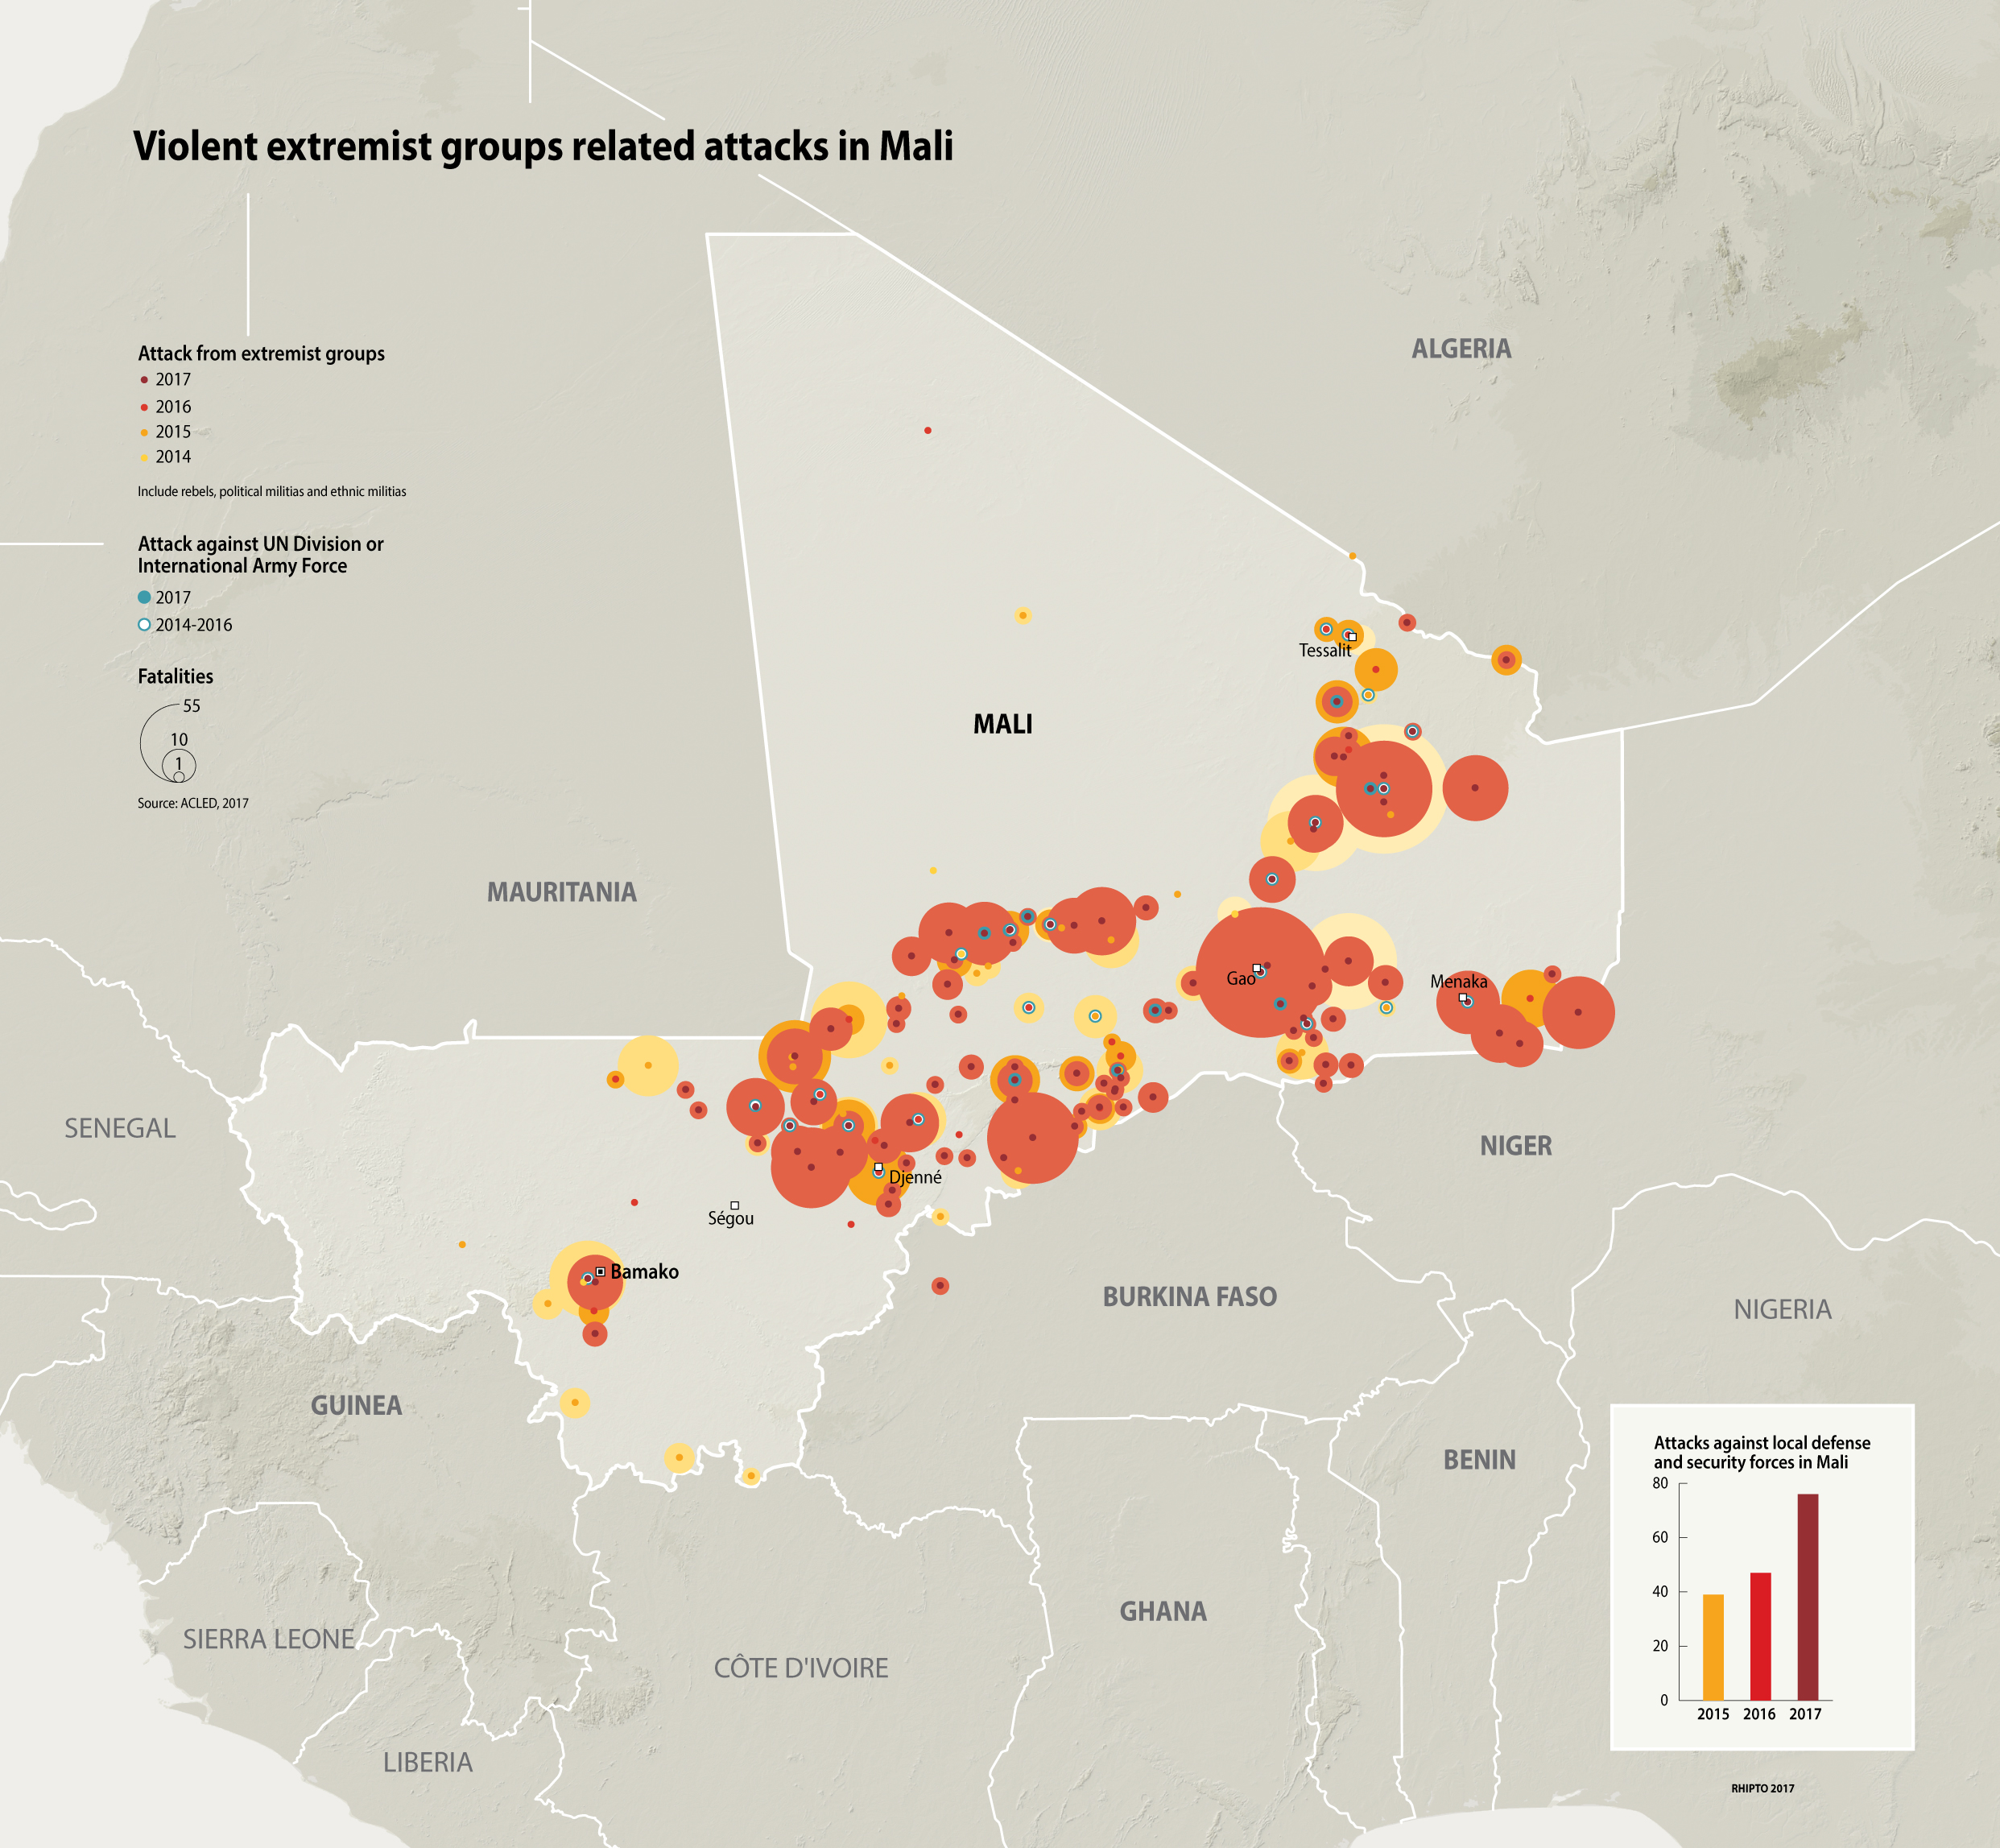 The conflict in Mali